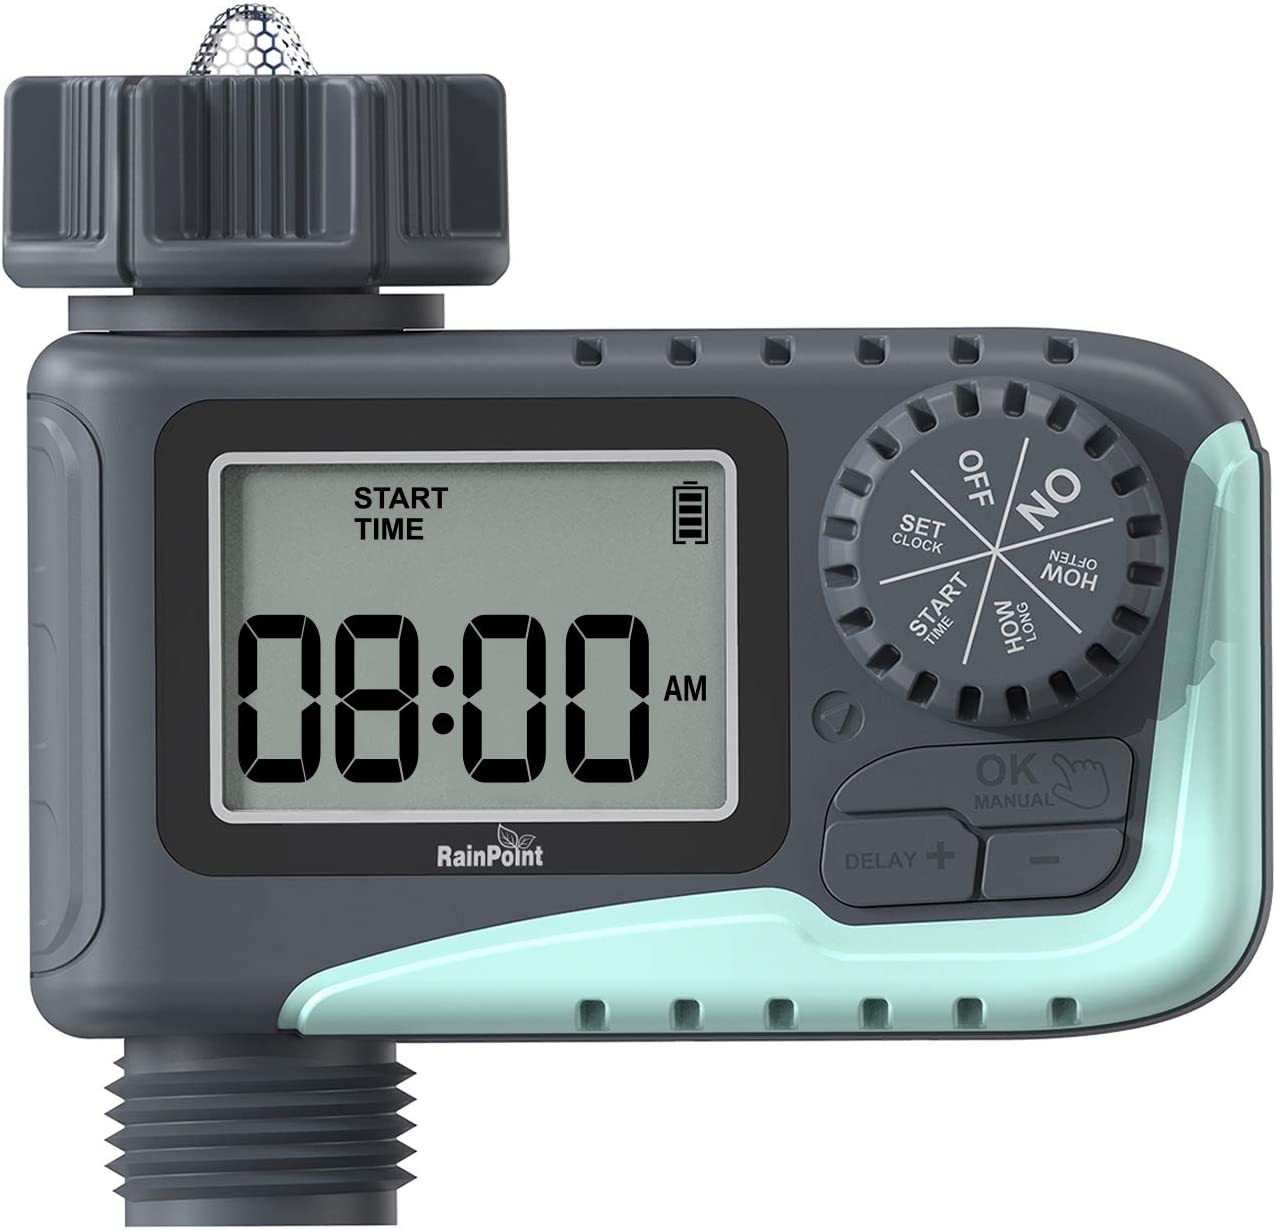 Sprinkler Timer Outdoor, RAINPOINT Digital Water Timer with Rain Delay Auto and Manual Watering,Programmable Hose Timer IPX5 Waterproof,Garden Irrigation Timer for Garden Lawns Plants,Battery Operated